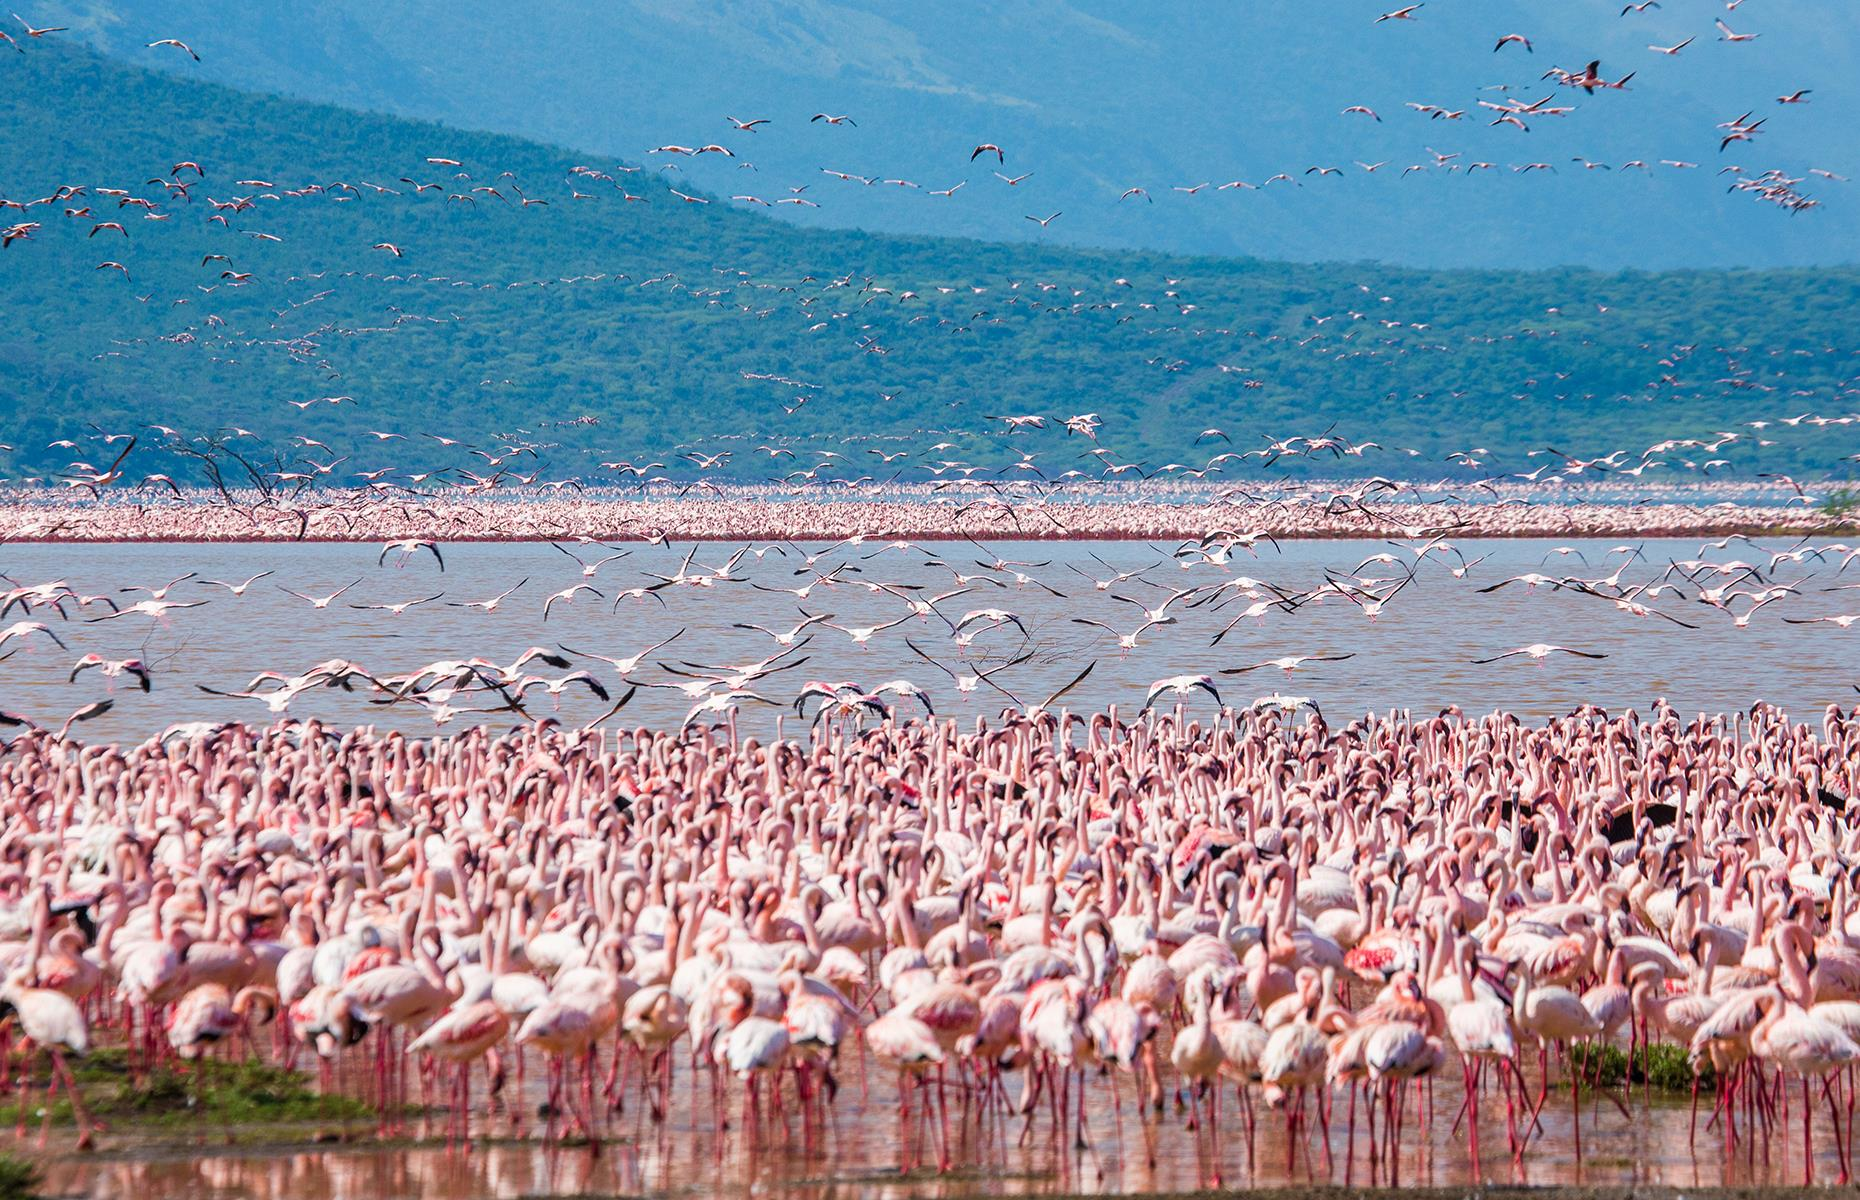 Slide 40 of 41: Each year during the peak of dry season in July and August hundreds of lesser flamingos, a species found in sub-Saharan Africa, flock to the algae-rich waters along eastern Africa's Rift Valley to feed. Preferred locations for this hardy bird, which have tough skin and scales to adapt to a wide range of environments, are the normally inhospitable, hypersaline waters of Lake Bogoria in Kenya and Lake Natron in Tanzania. Take a look at jaw-dropping places you can only see in photos.